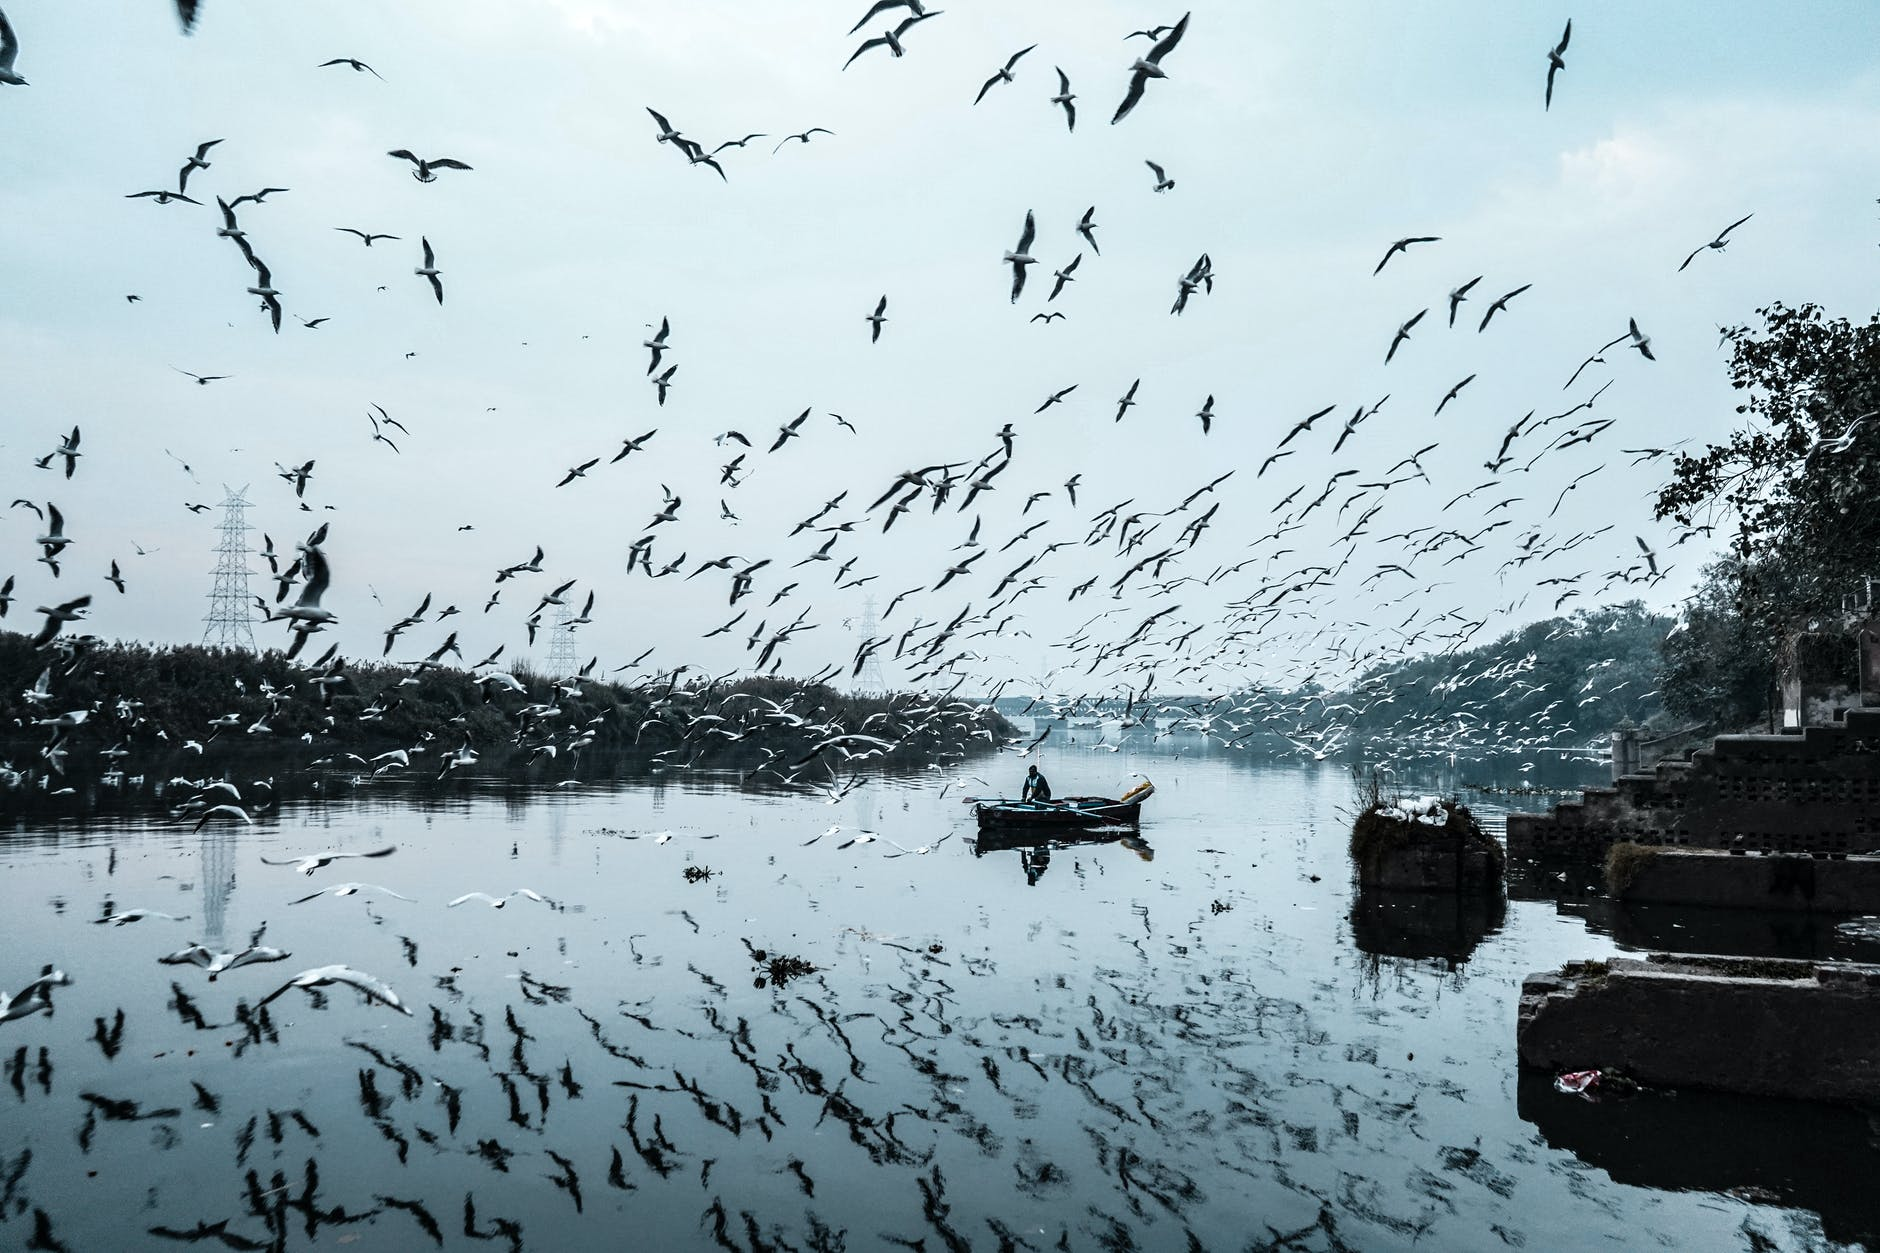 photo of birds flying during daytime